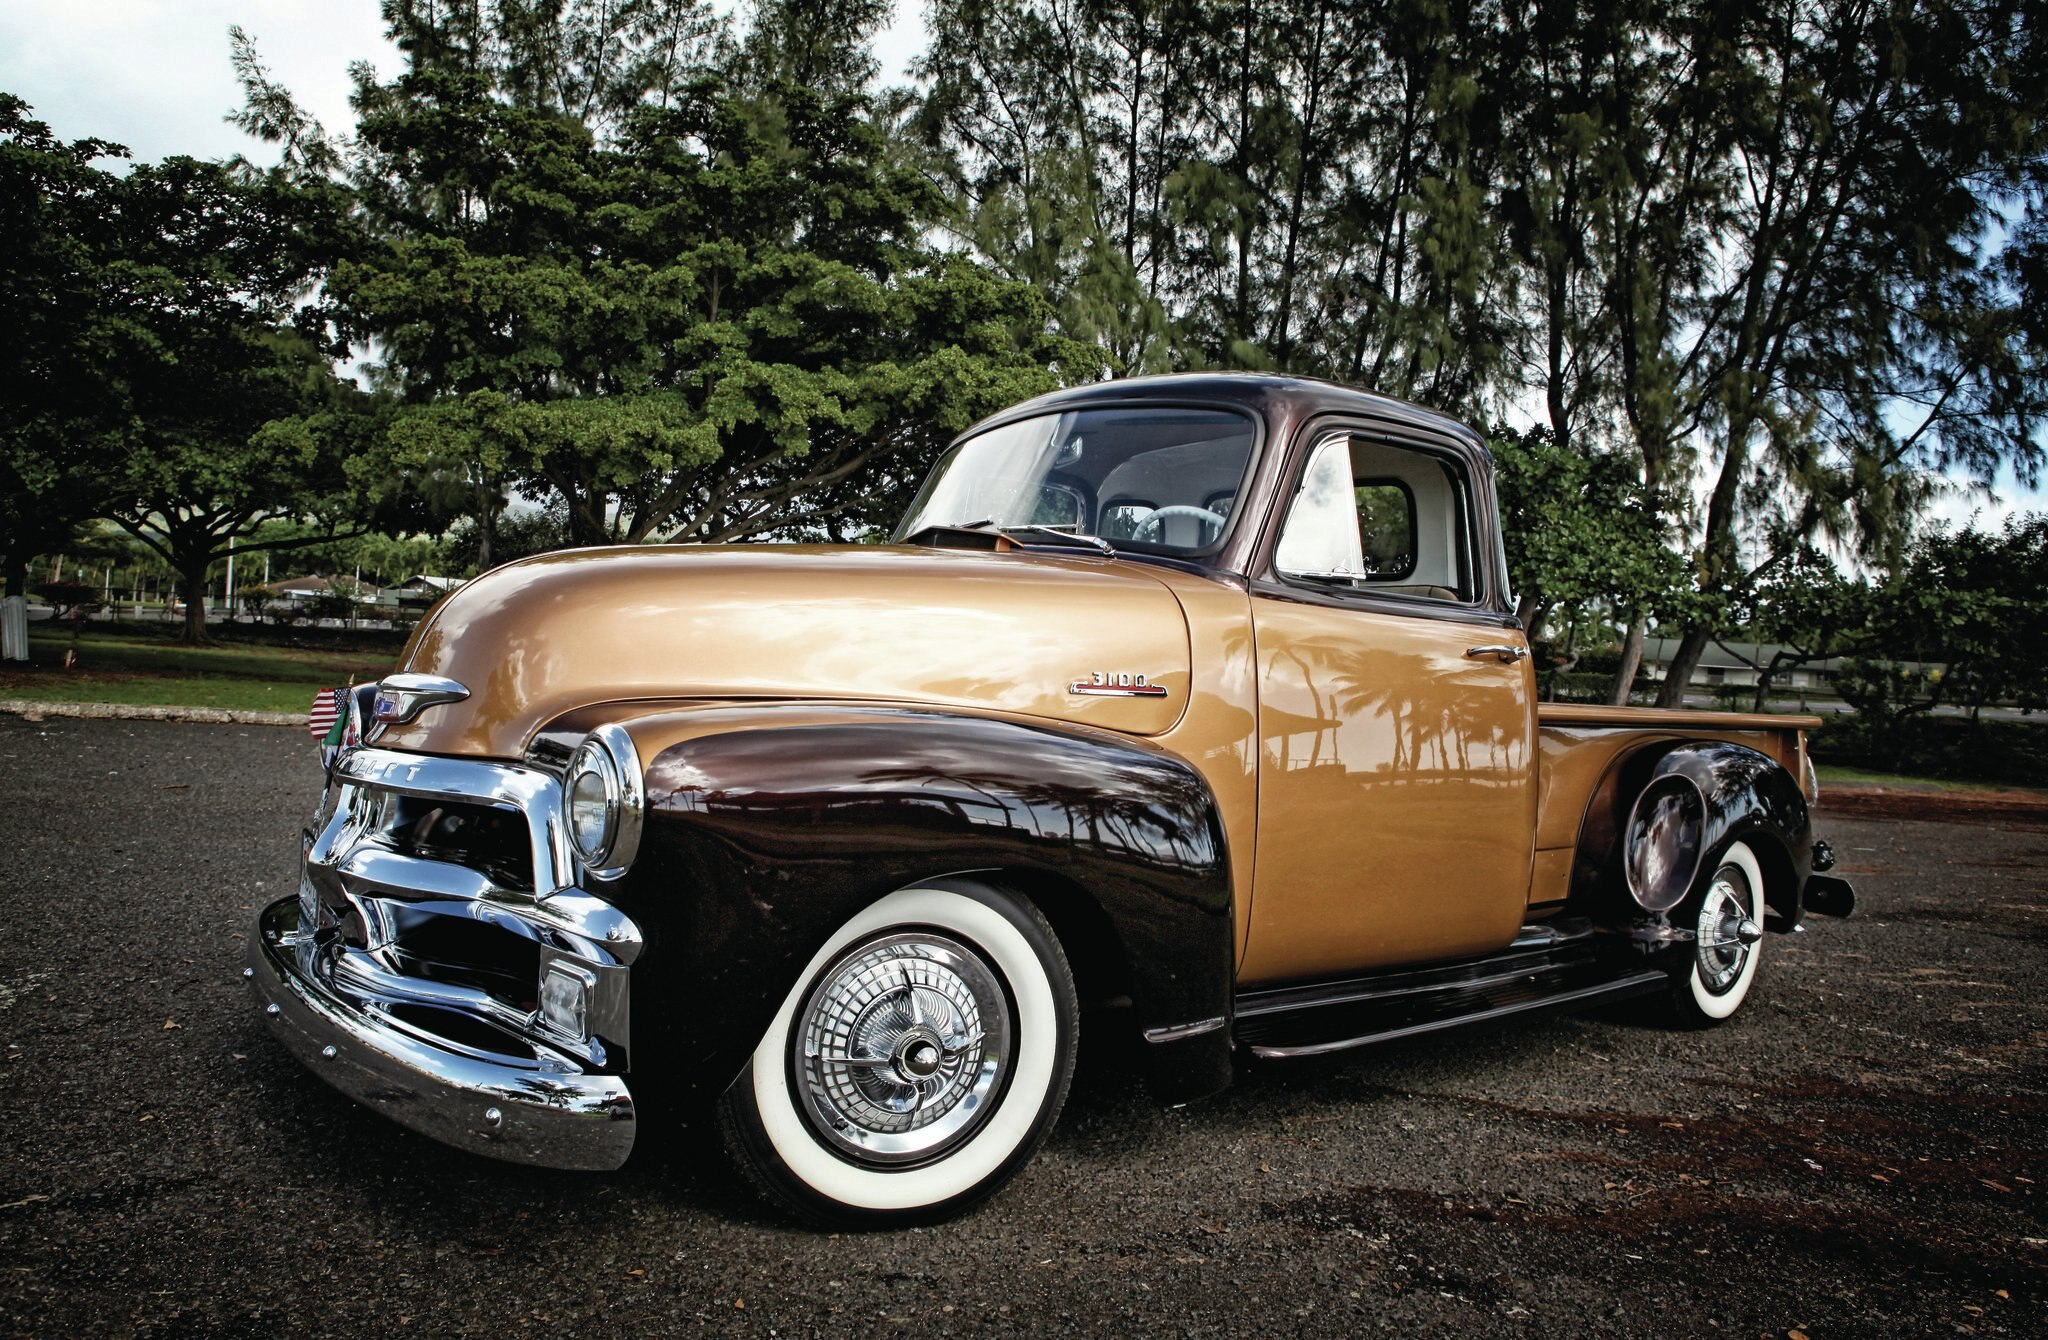 1954-chevrolet-3100-driver-side-front-view-011